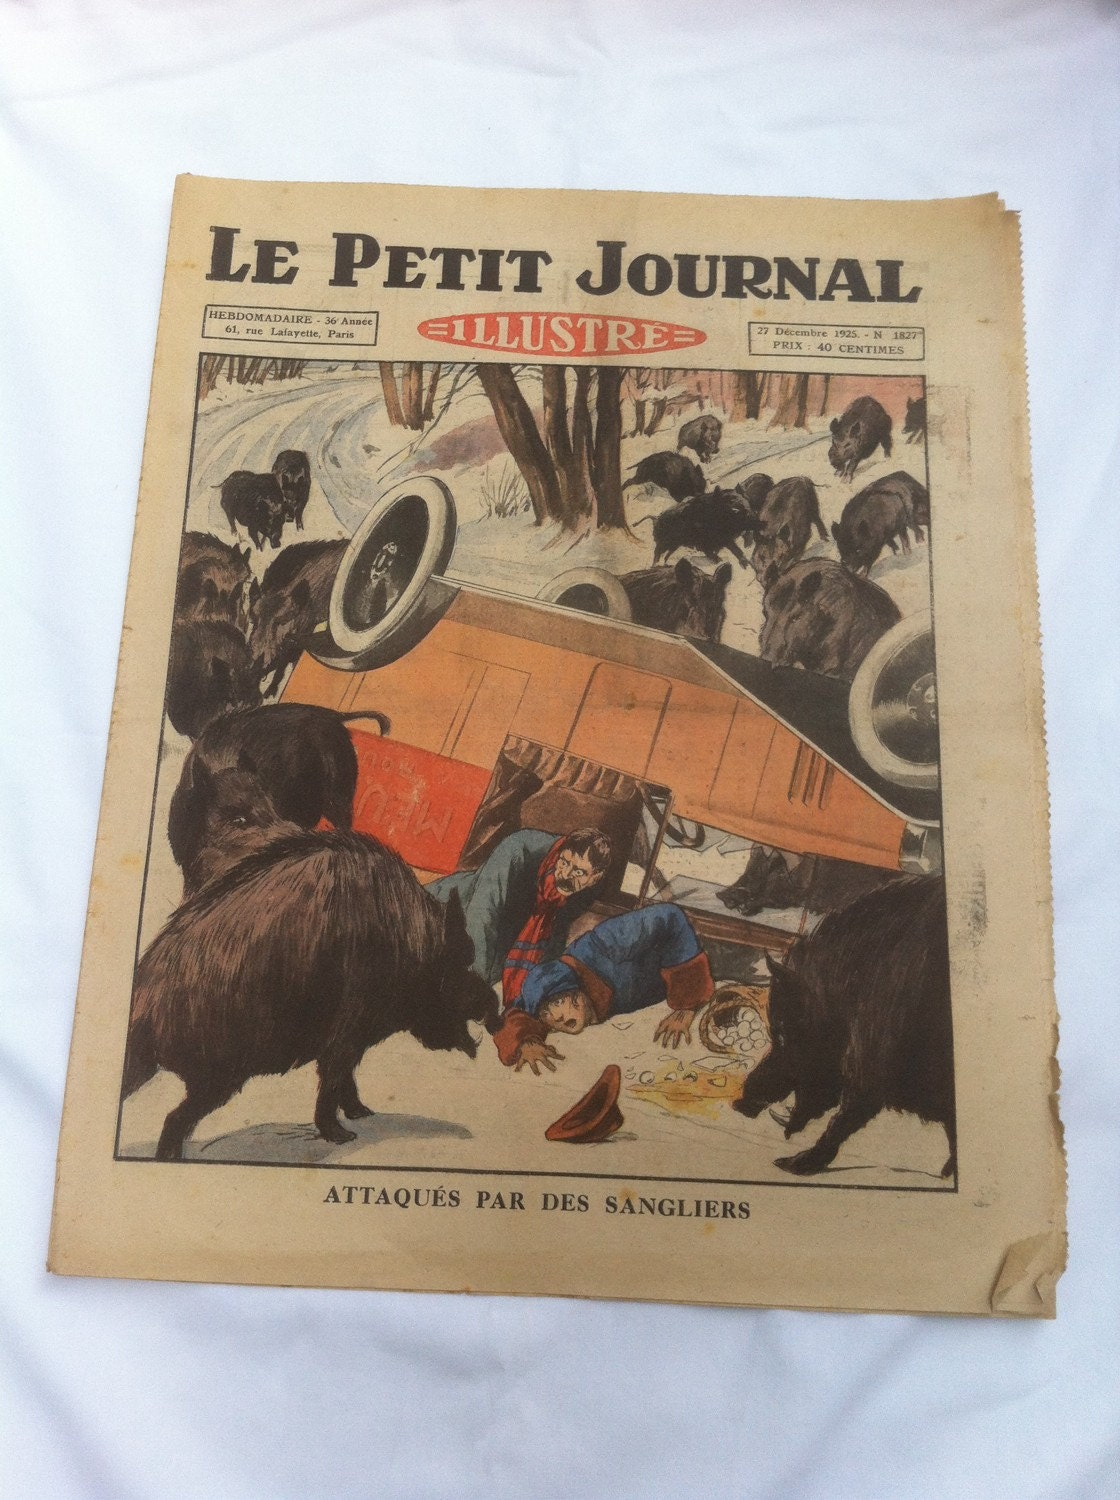 Le petit journal illustre vintage french newspaper paris antique ephemera - Studio petit journal ...